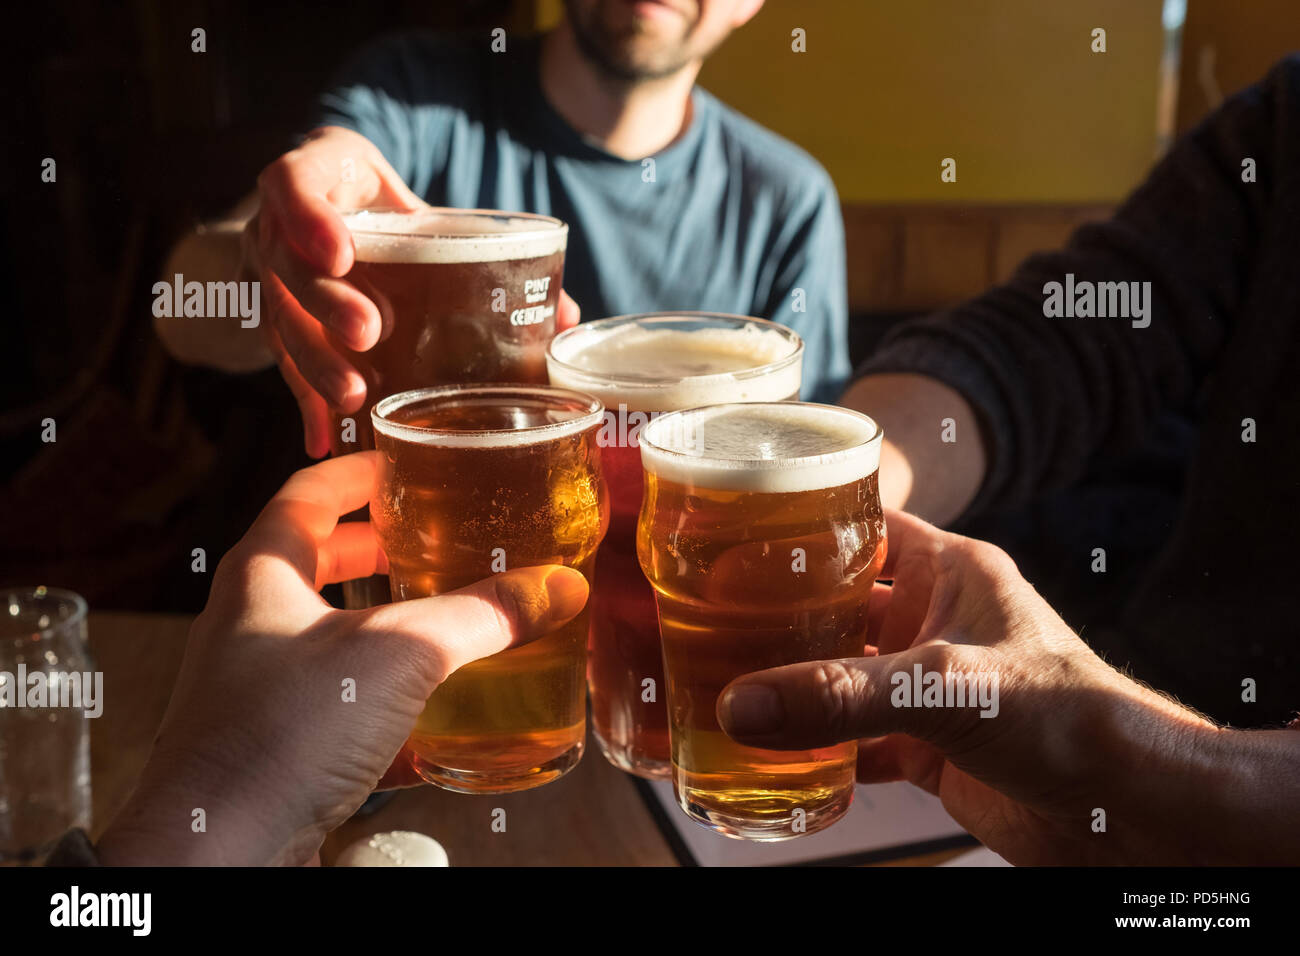 A party of four clink glasses (2 pints of cask ale and 2 half pints of cider) and say cheers at The Black Bull Inn in Frosterley, County Durham, UK. - Stock Image